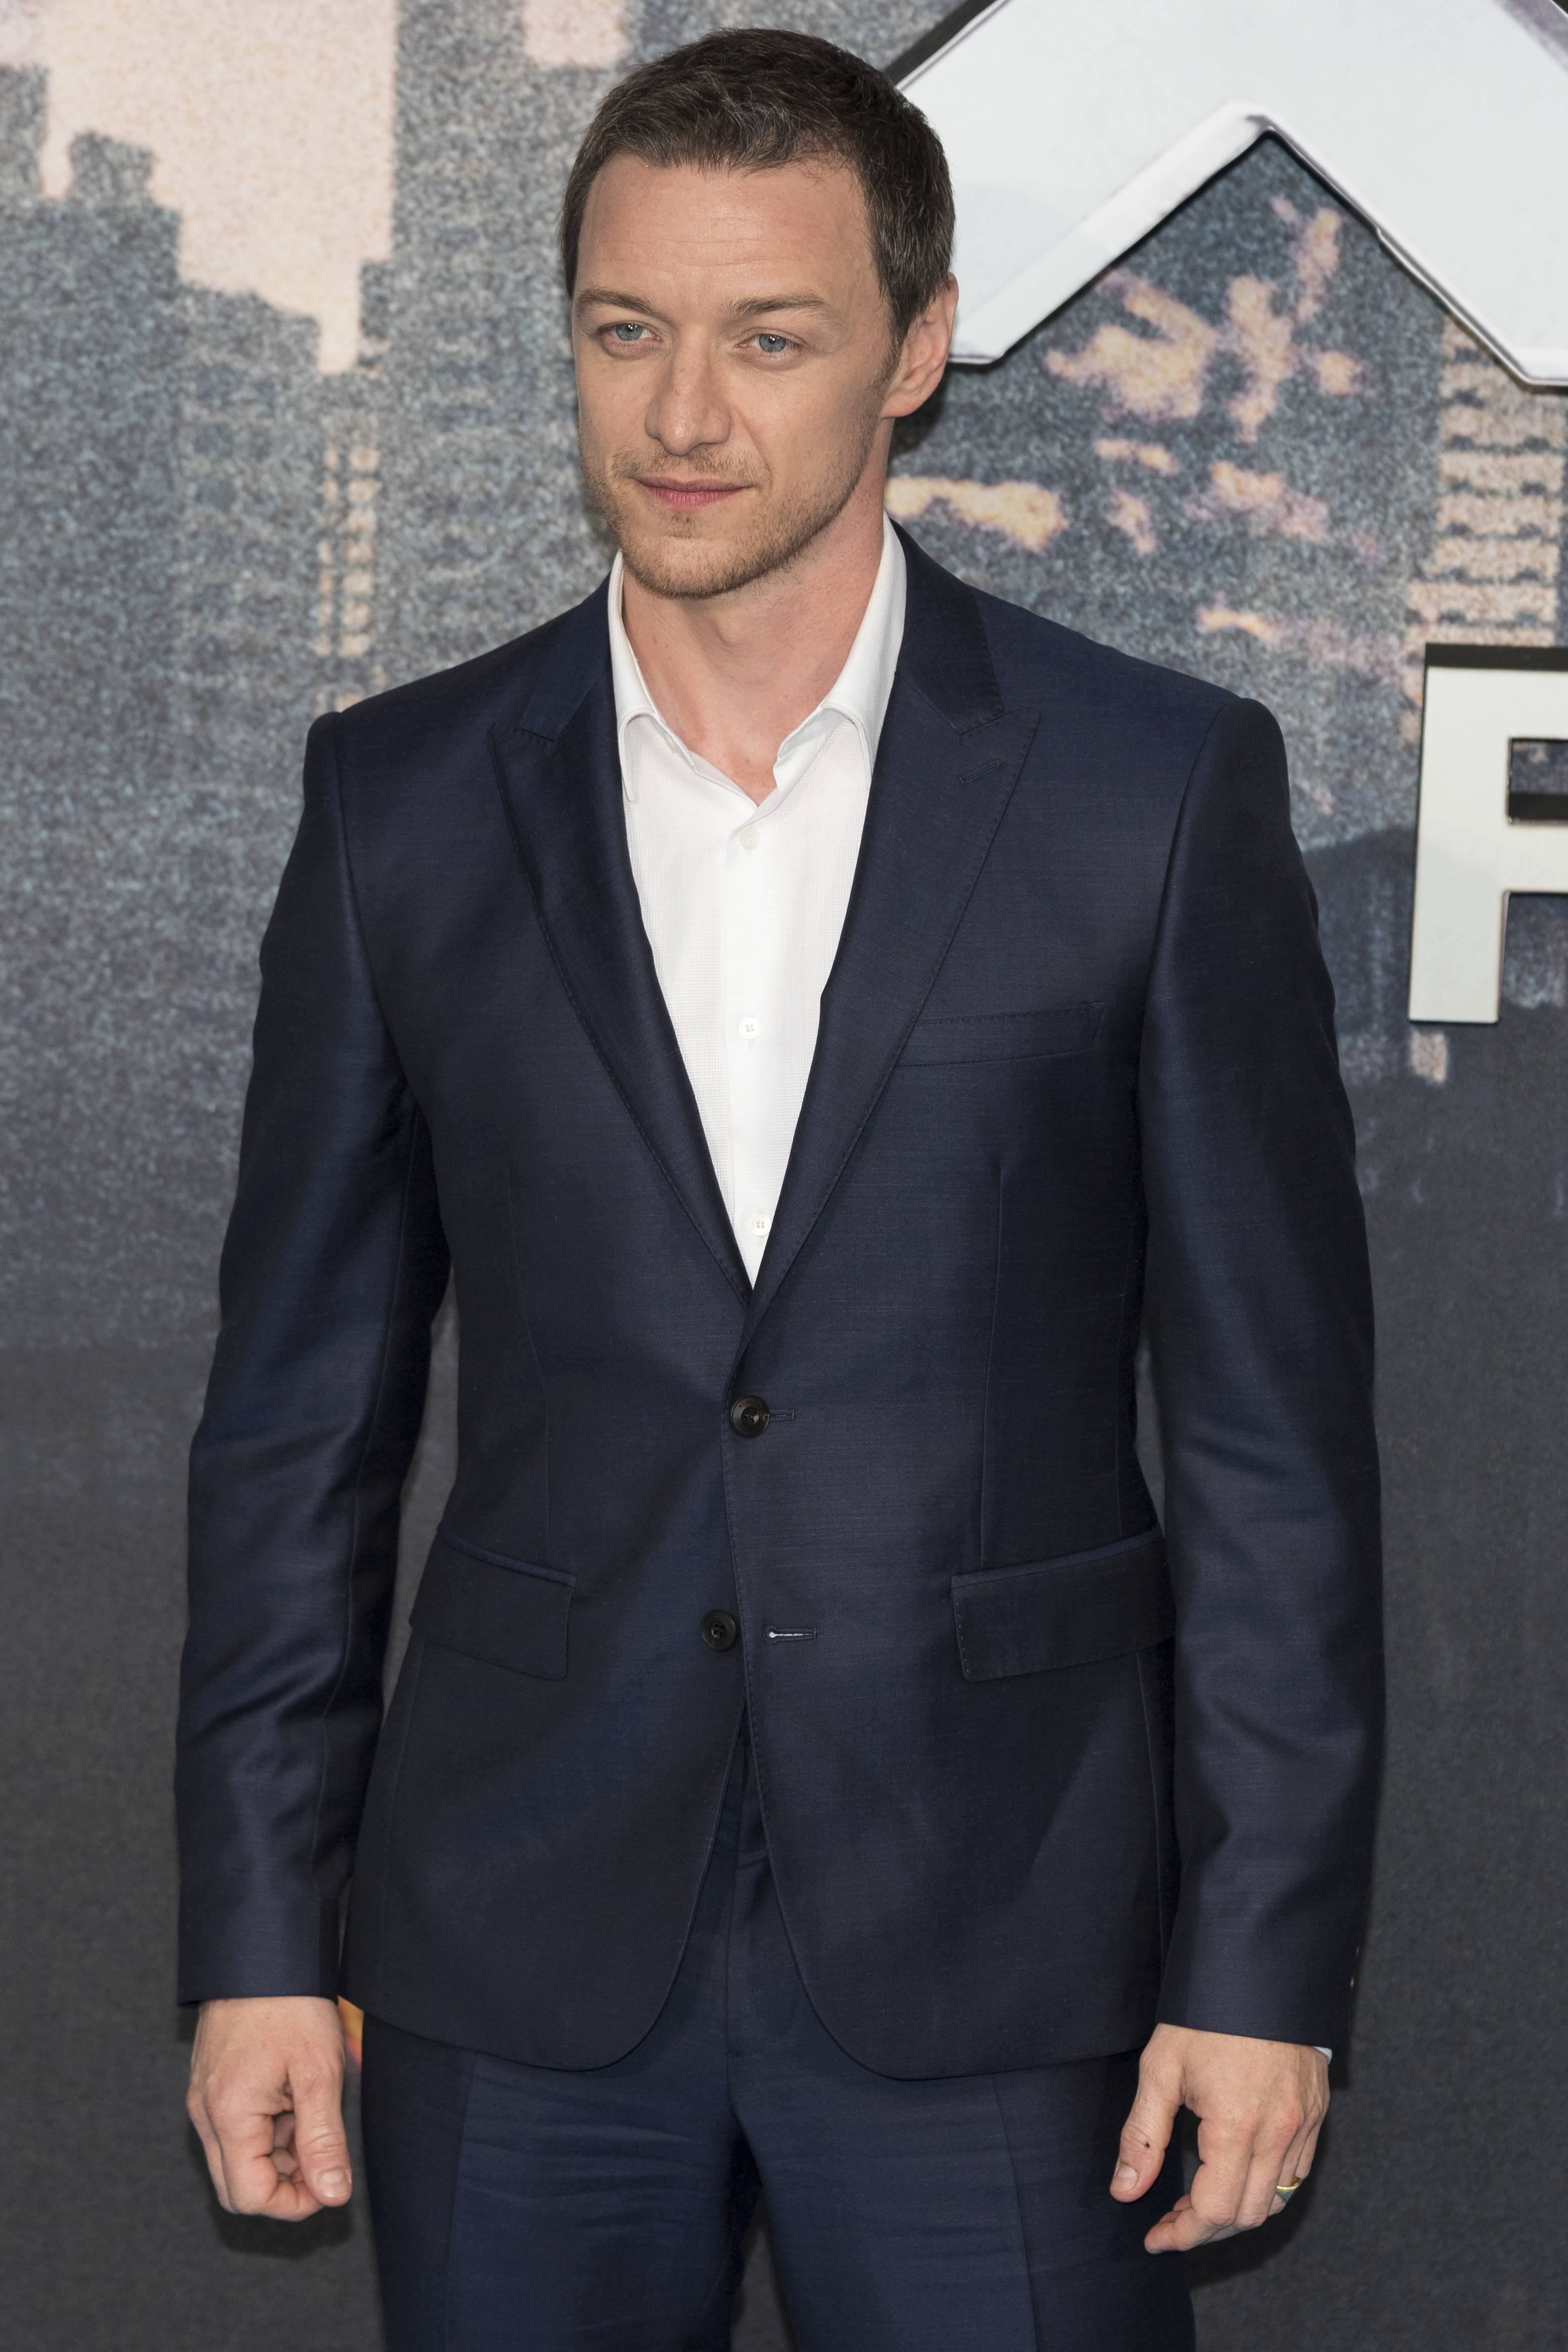 Fans Shocked By James McAvoys Body Transformation For New Role PA 26284921 2